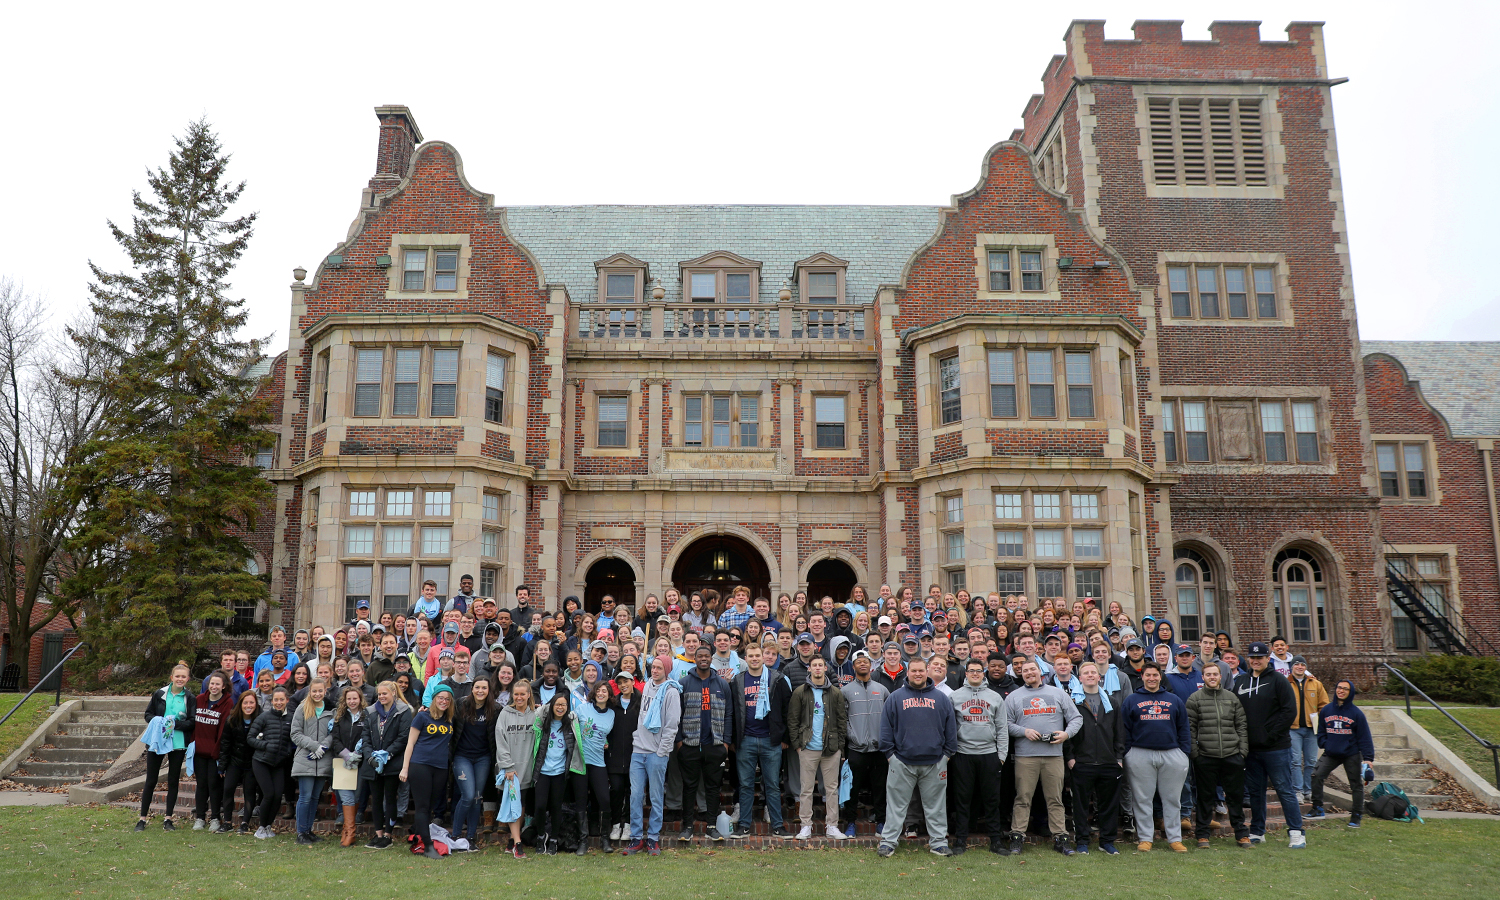 Students participating in Day of Service gather for a group photo in front of Coxe Hall. More than 400 students worked on volunteer projects throughout Geneva and the local area with projects ranging from cleaning community parks and trails, volunteering at local schools, and helping non-profit agencies with various tasks.